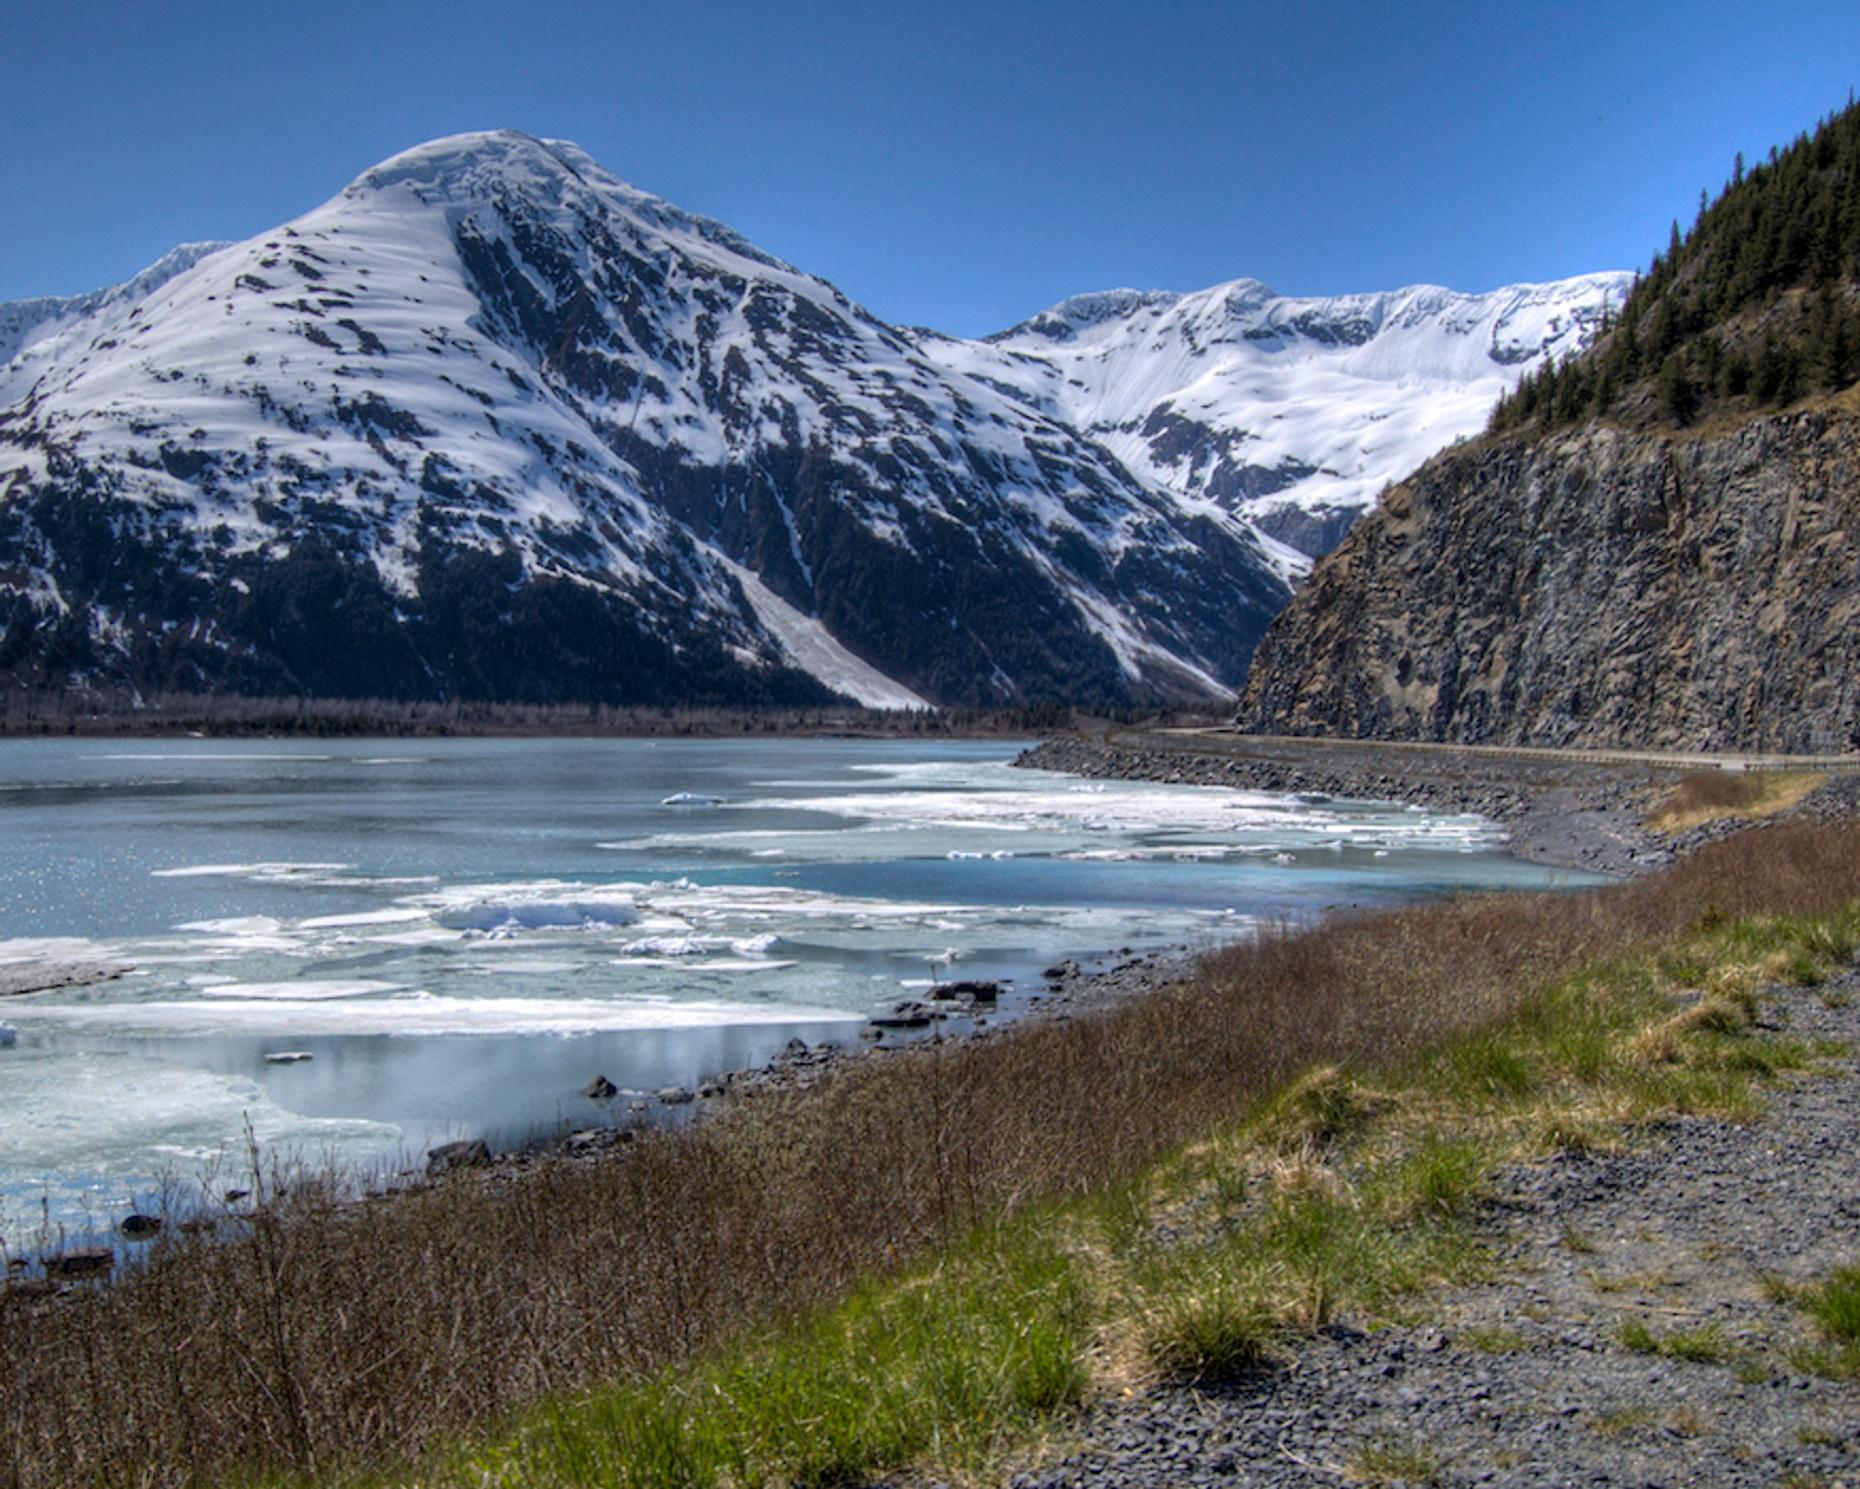 Direct Bus Transfer from Anchorage to Whittier